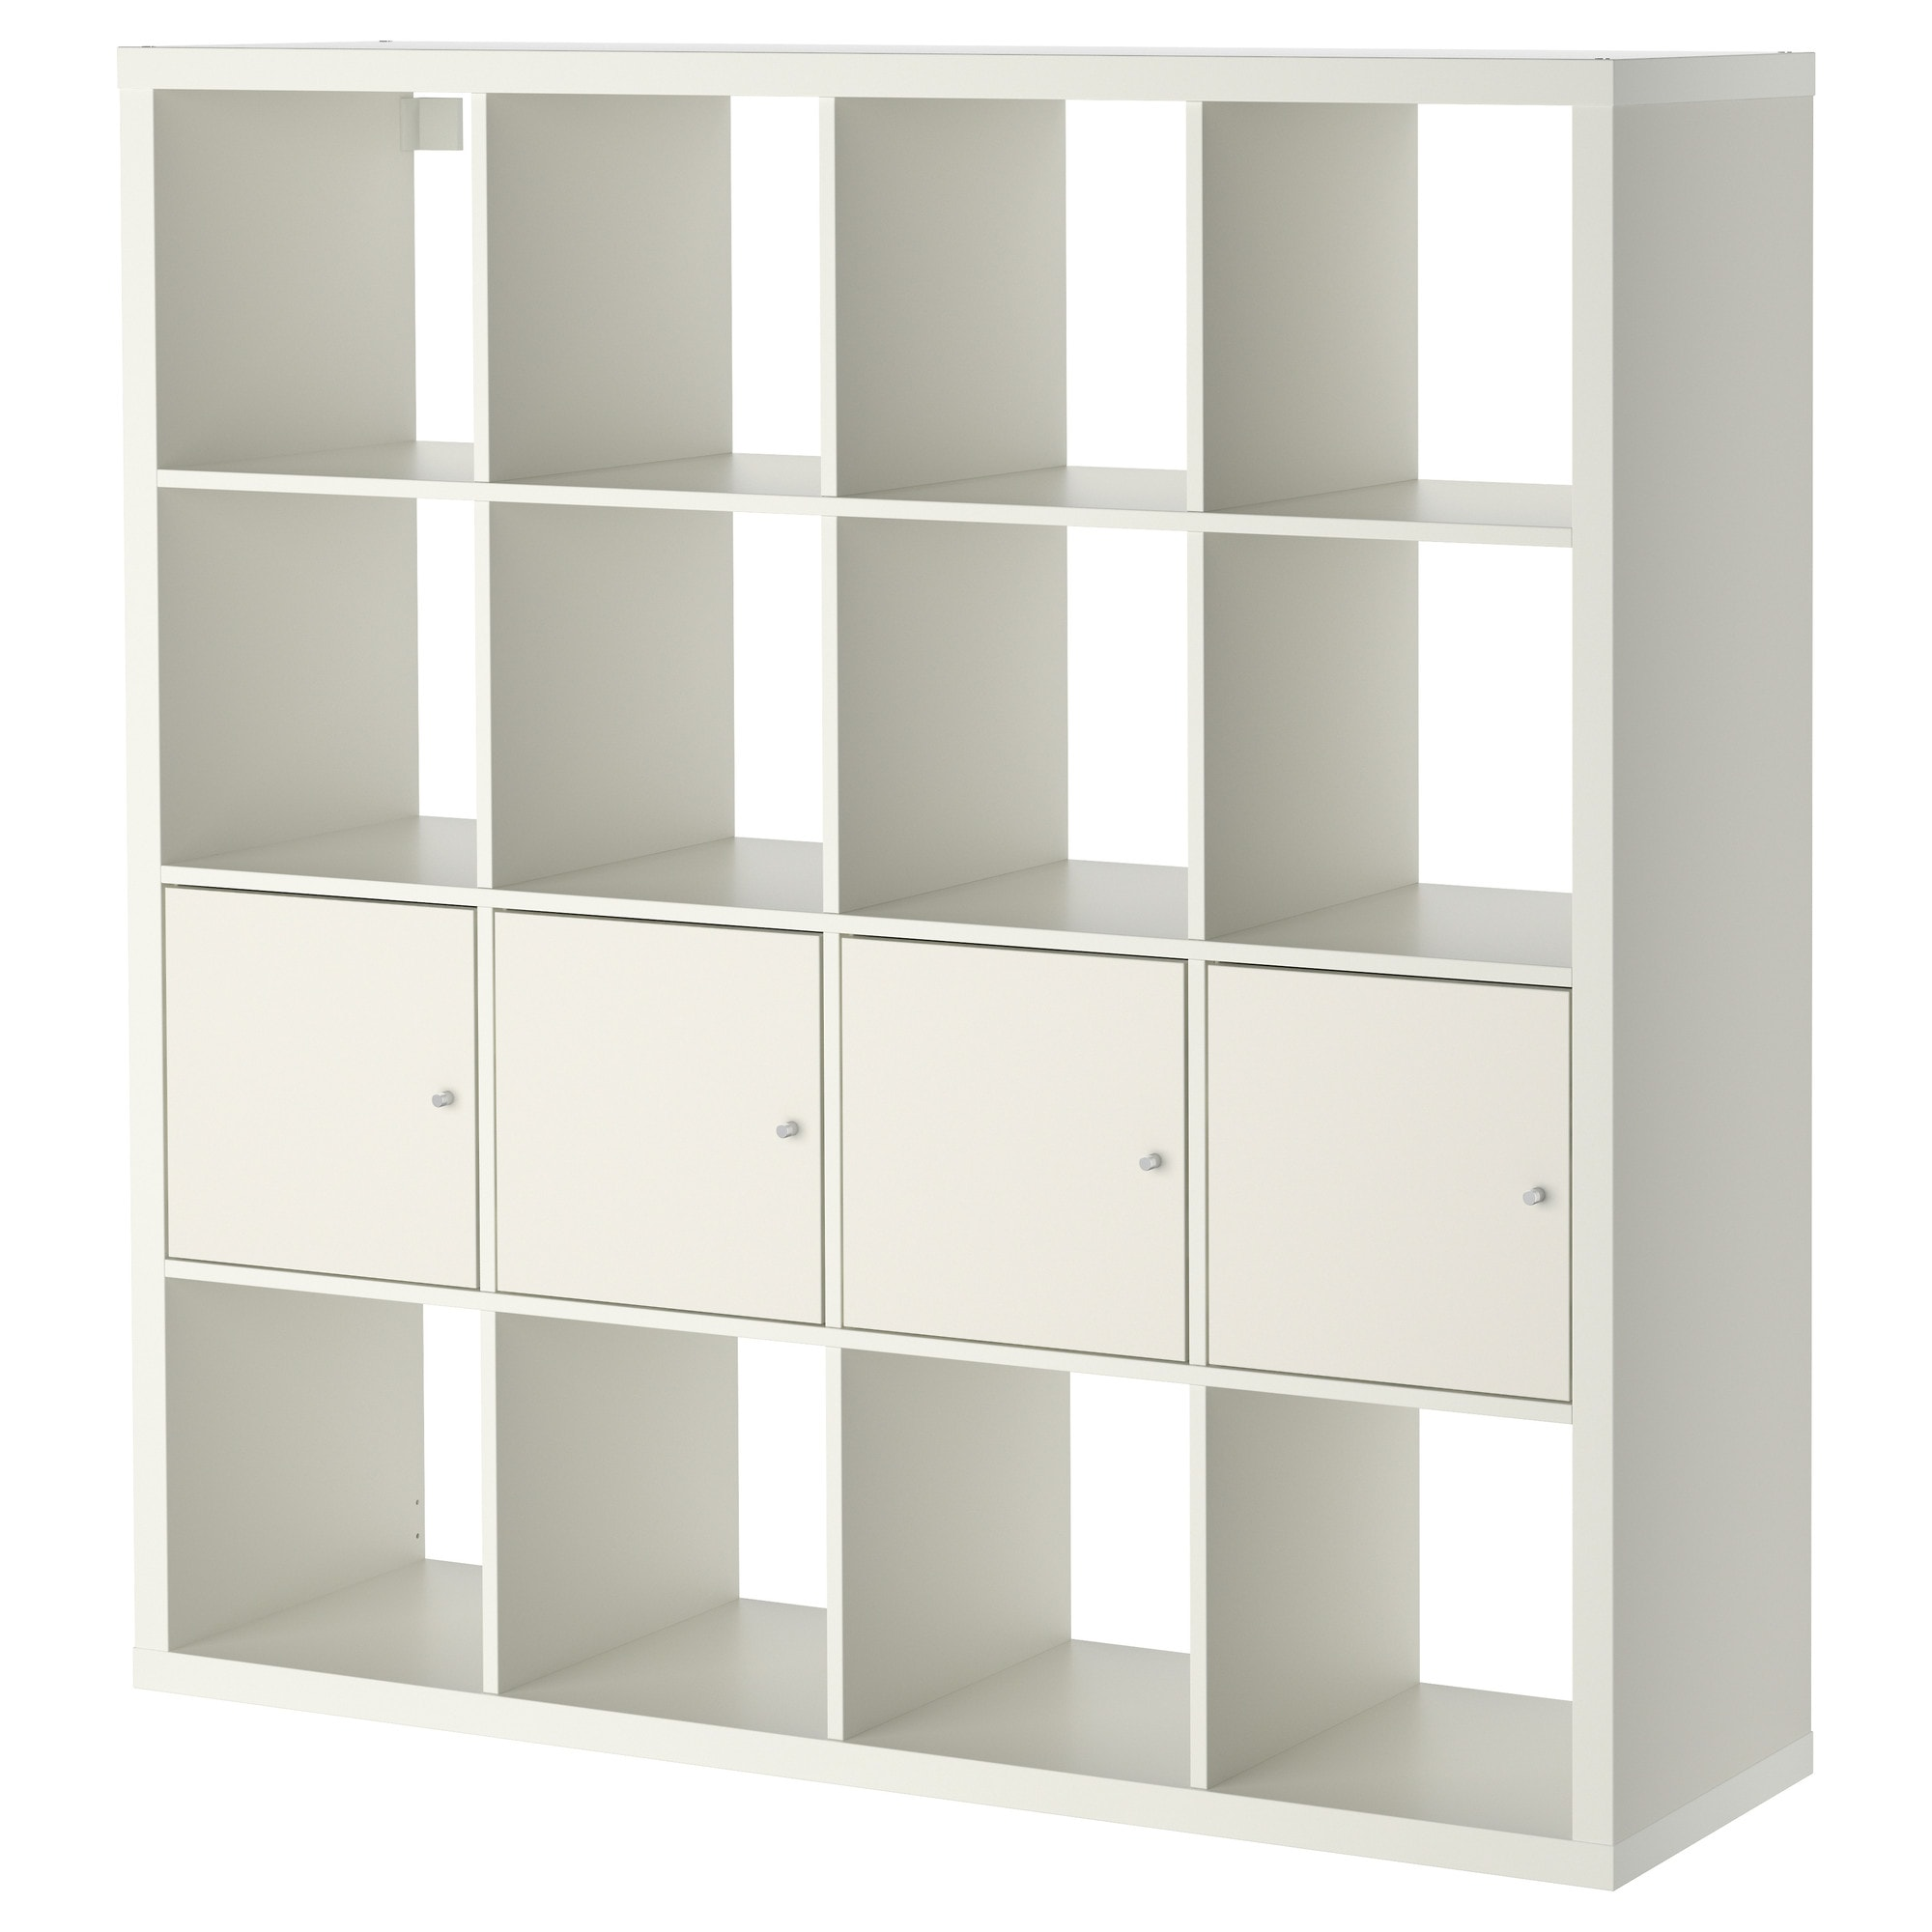 kallax shelving unit with 4 inserts white - ikea